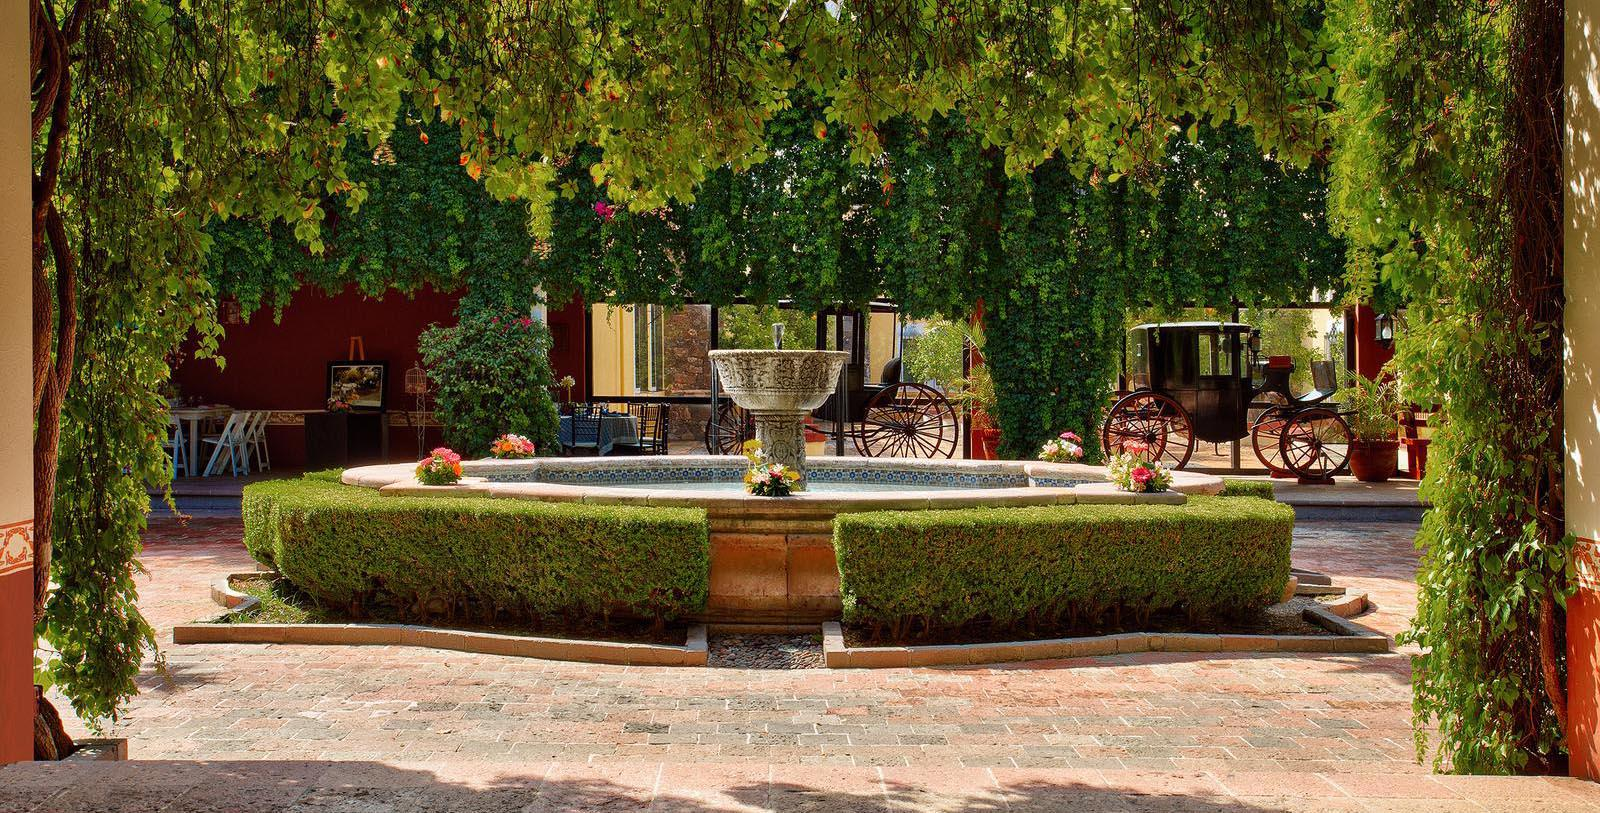 Image of COurtyard Fountain, Hacienda Jurica by Brisas, Queretaro, Mexico, 1551, Member of Historic Hotels Worldwide, Explore